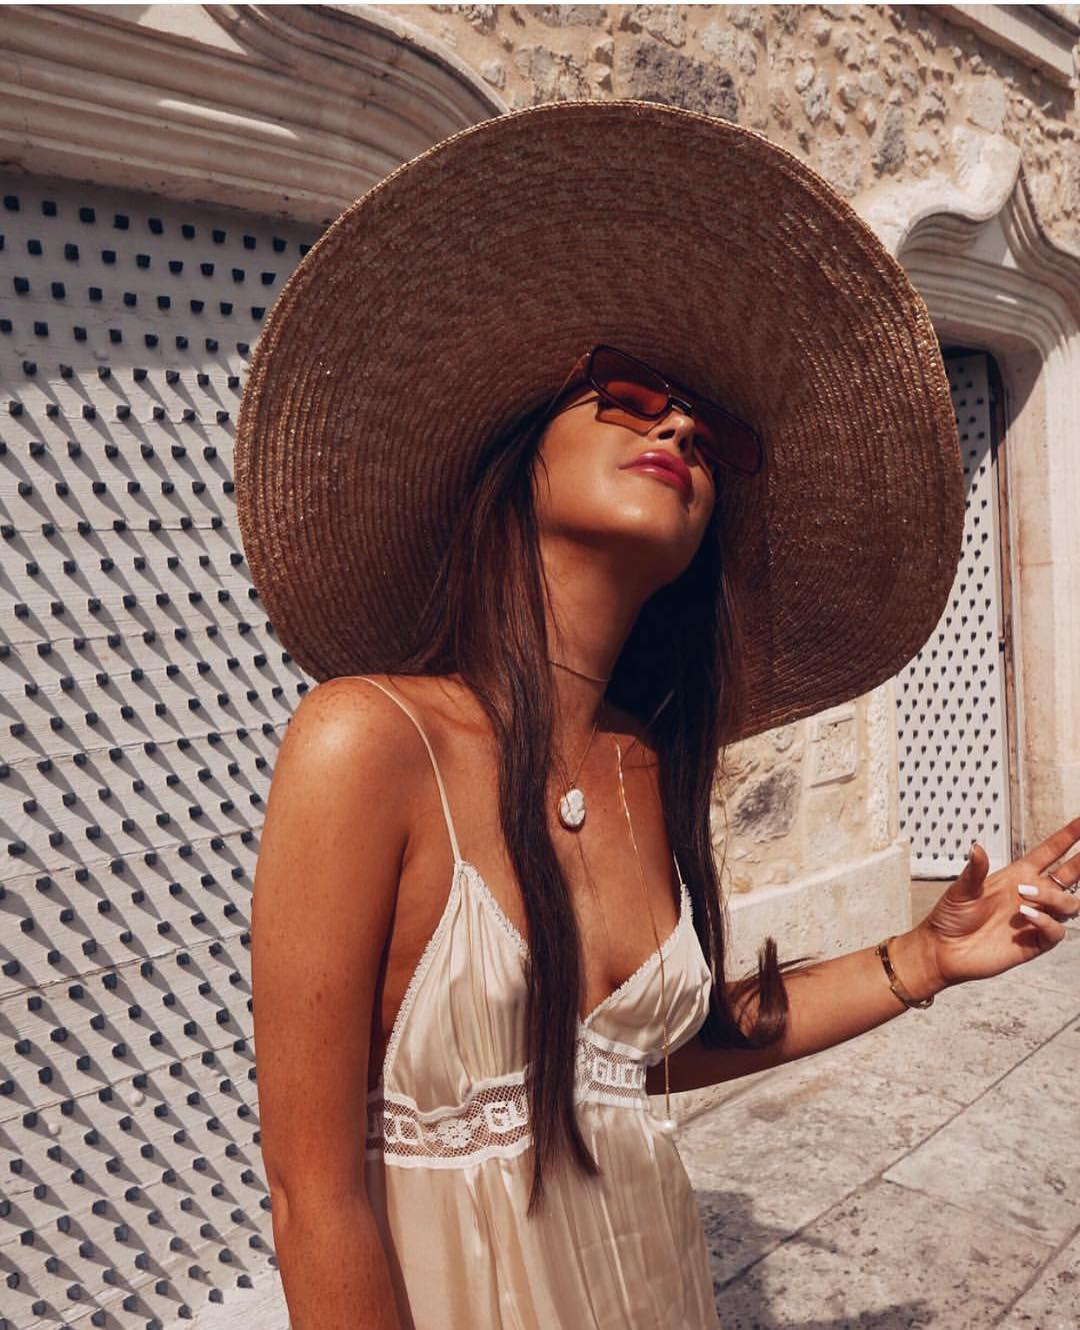 Wide Brim Straw Sunhat And Silken Slipdress For Summer 2020